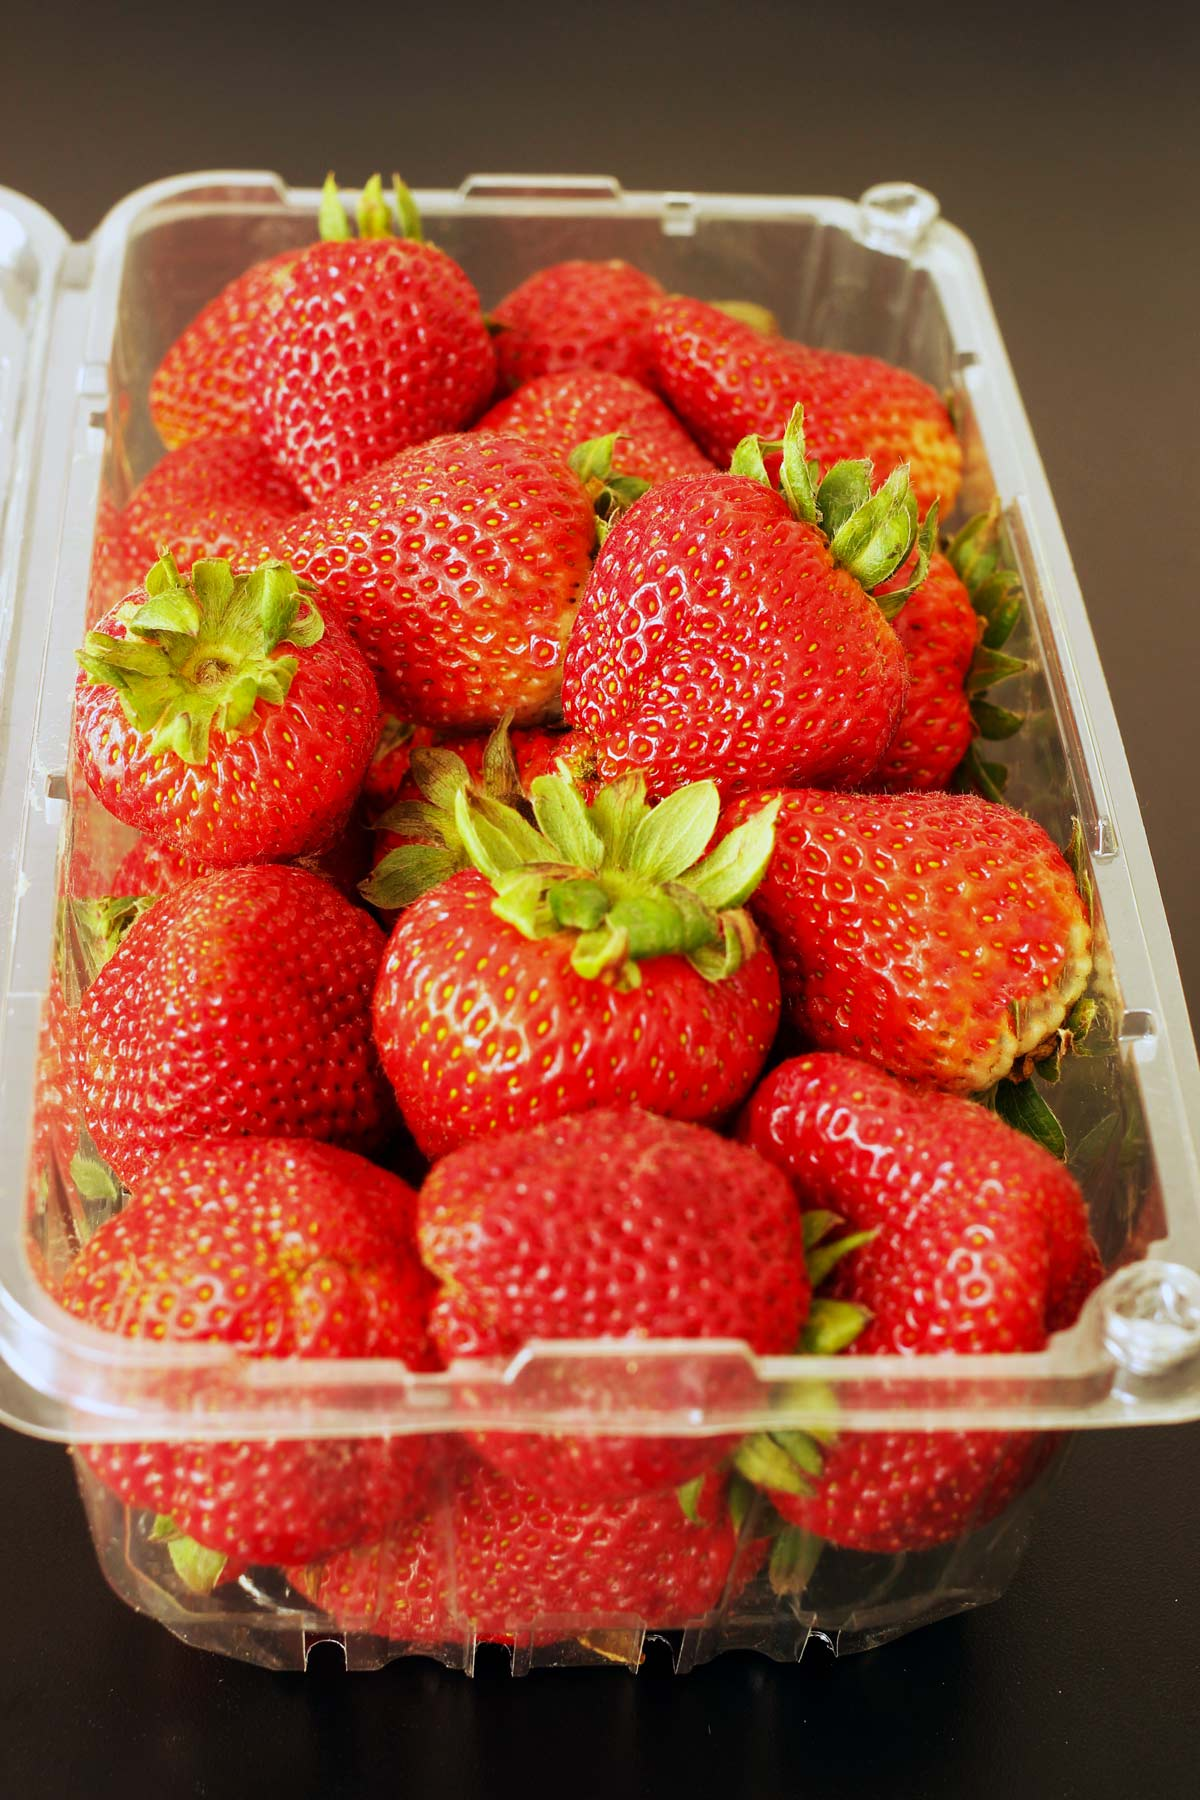 strawberries in plastic clamshell box.